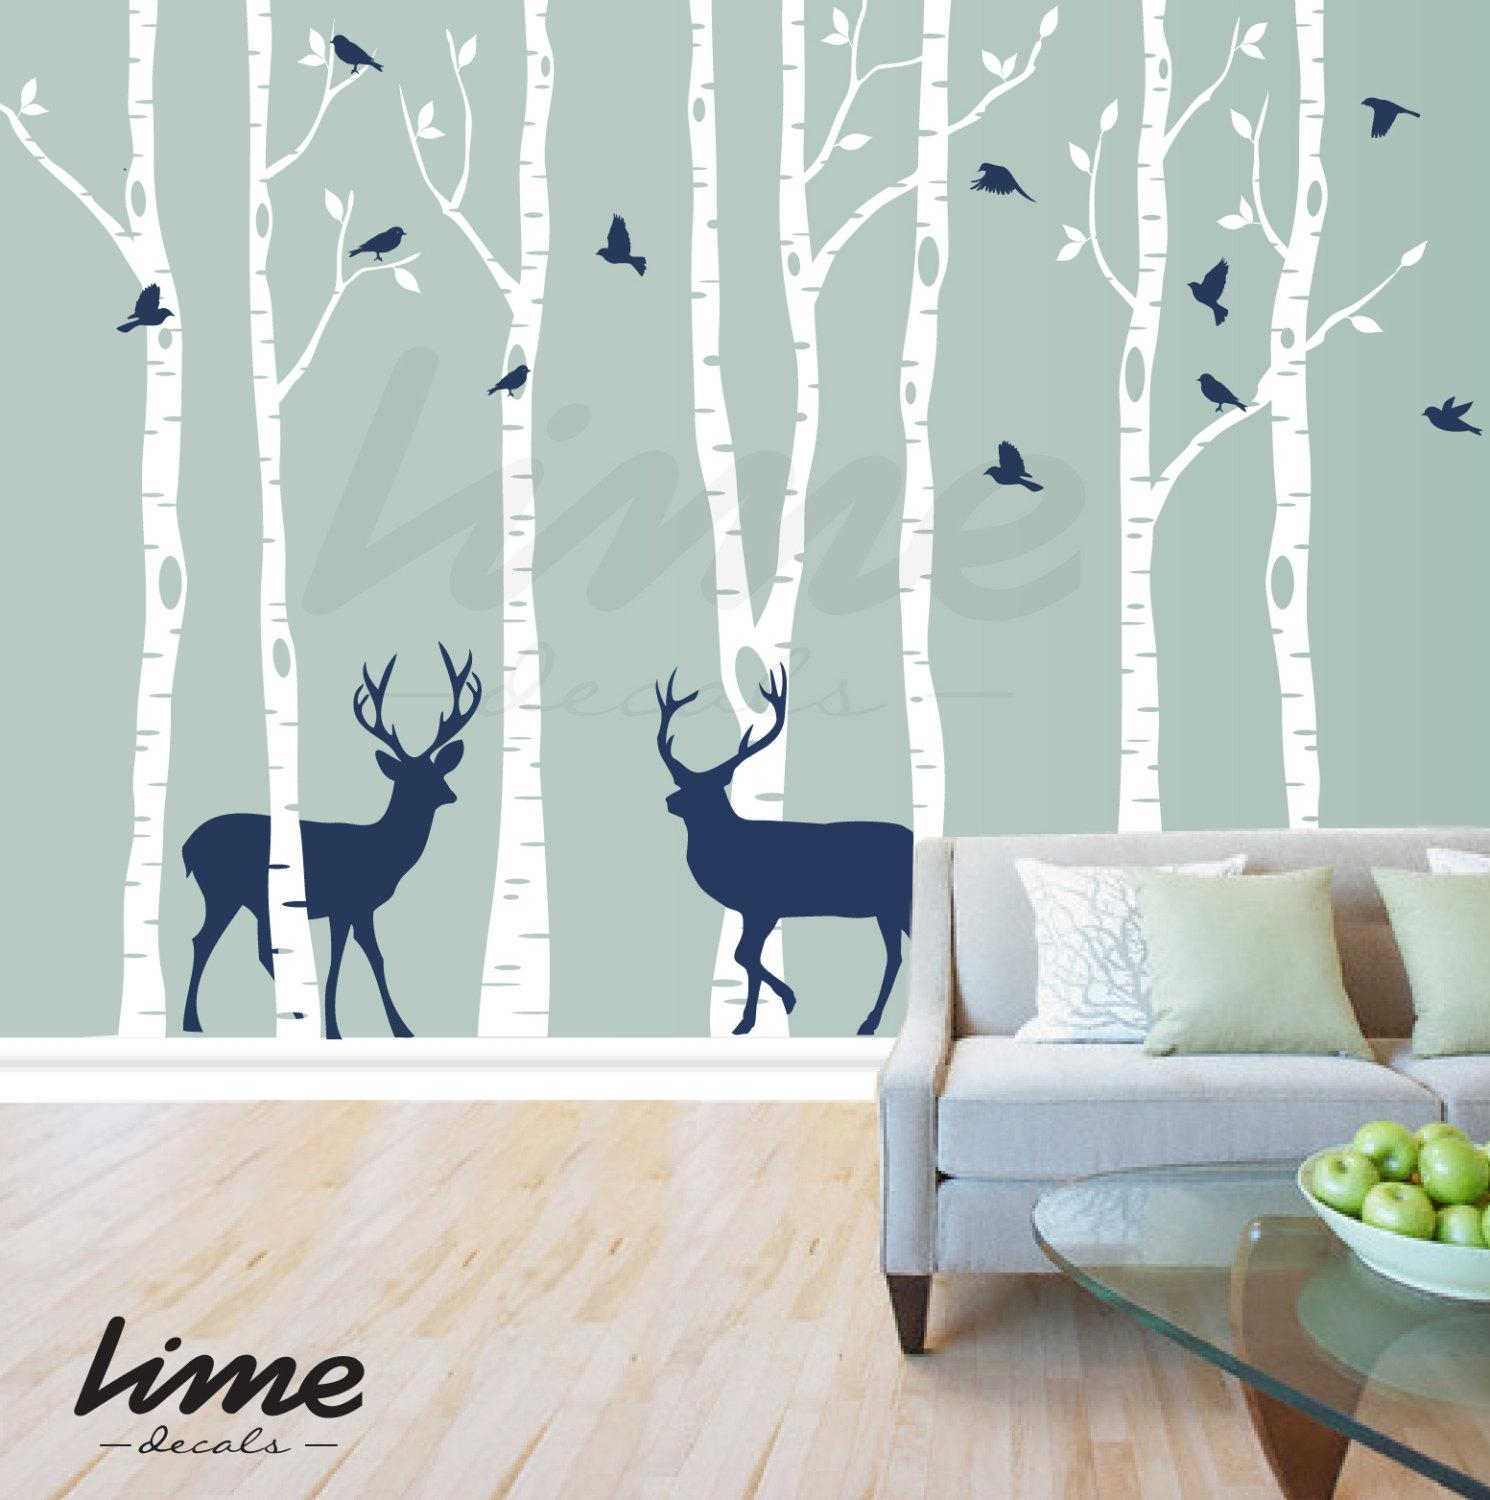 Birch Tree Deer Wall Pictures Of Photo Albums Birch Tree Wall Pertaining To Wall Art Deco Decals (View 9 of 20)